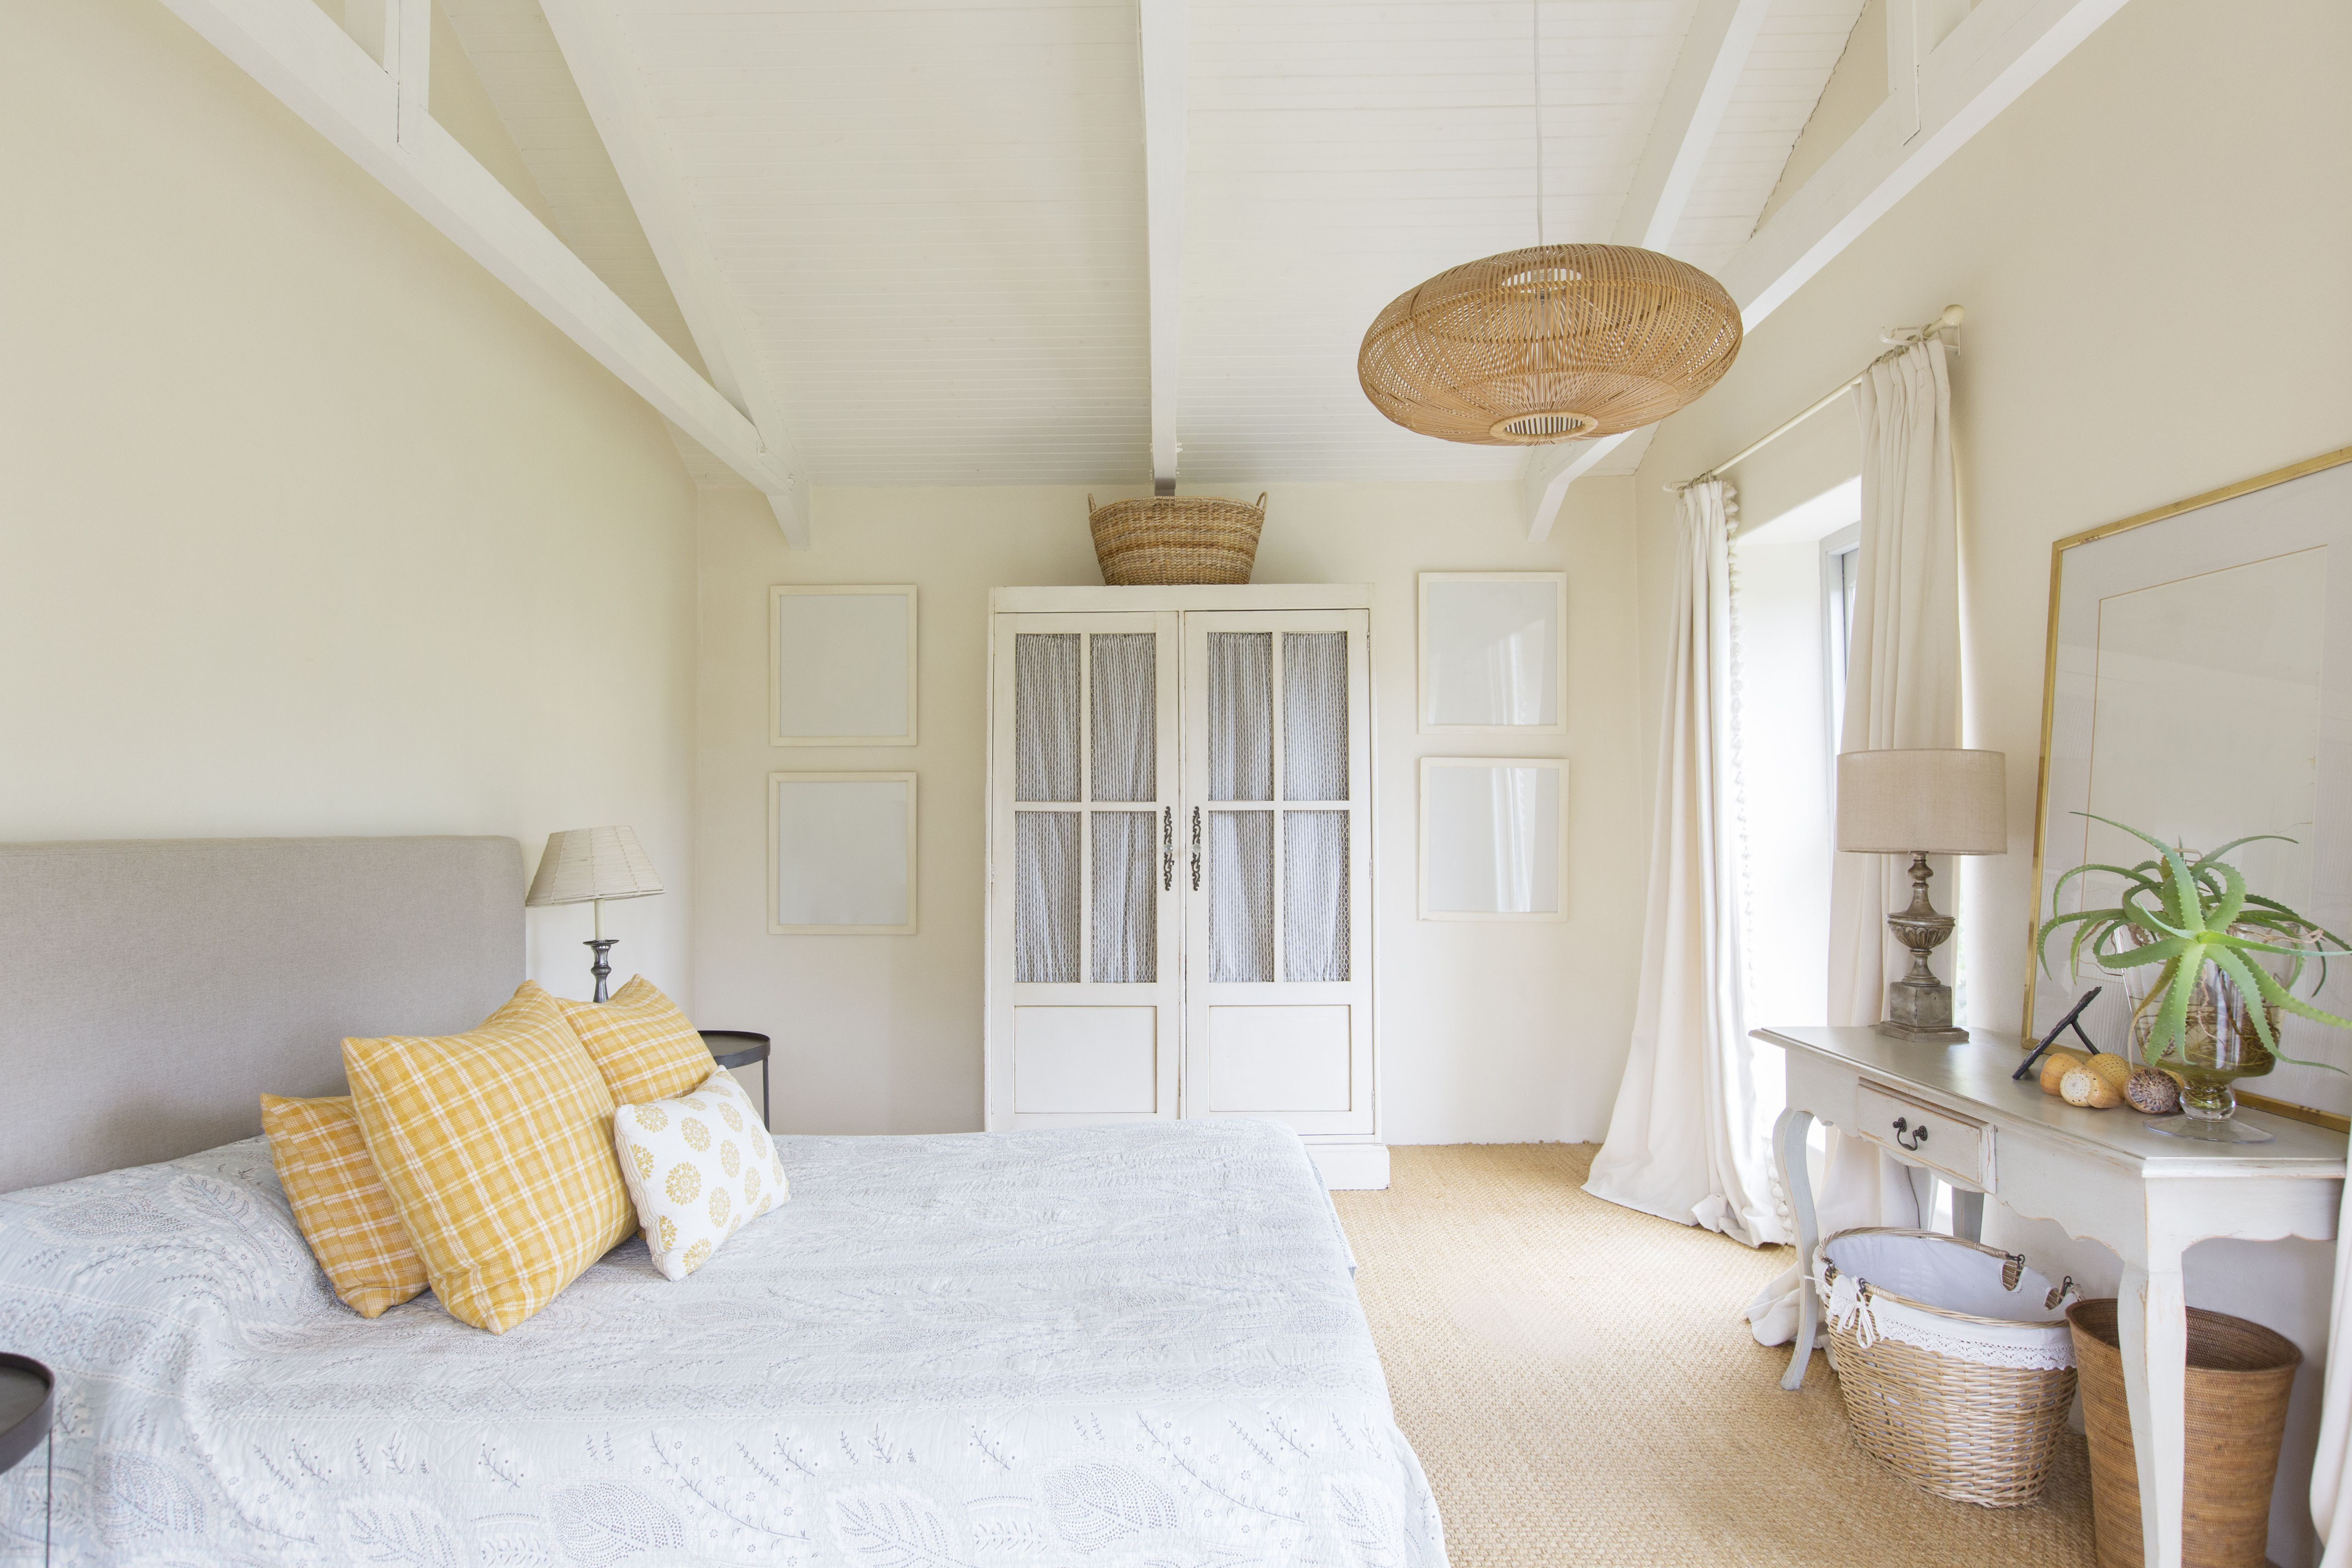 Get Home Design Ideas: Get Rid Of Bedroom Clutter. Here's What To Toss